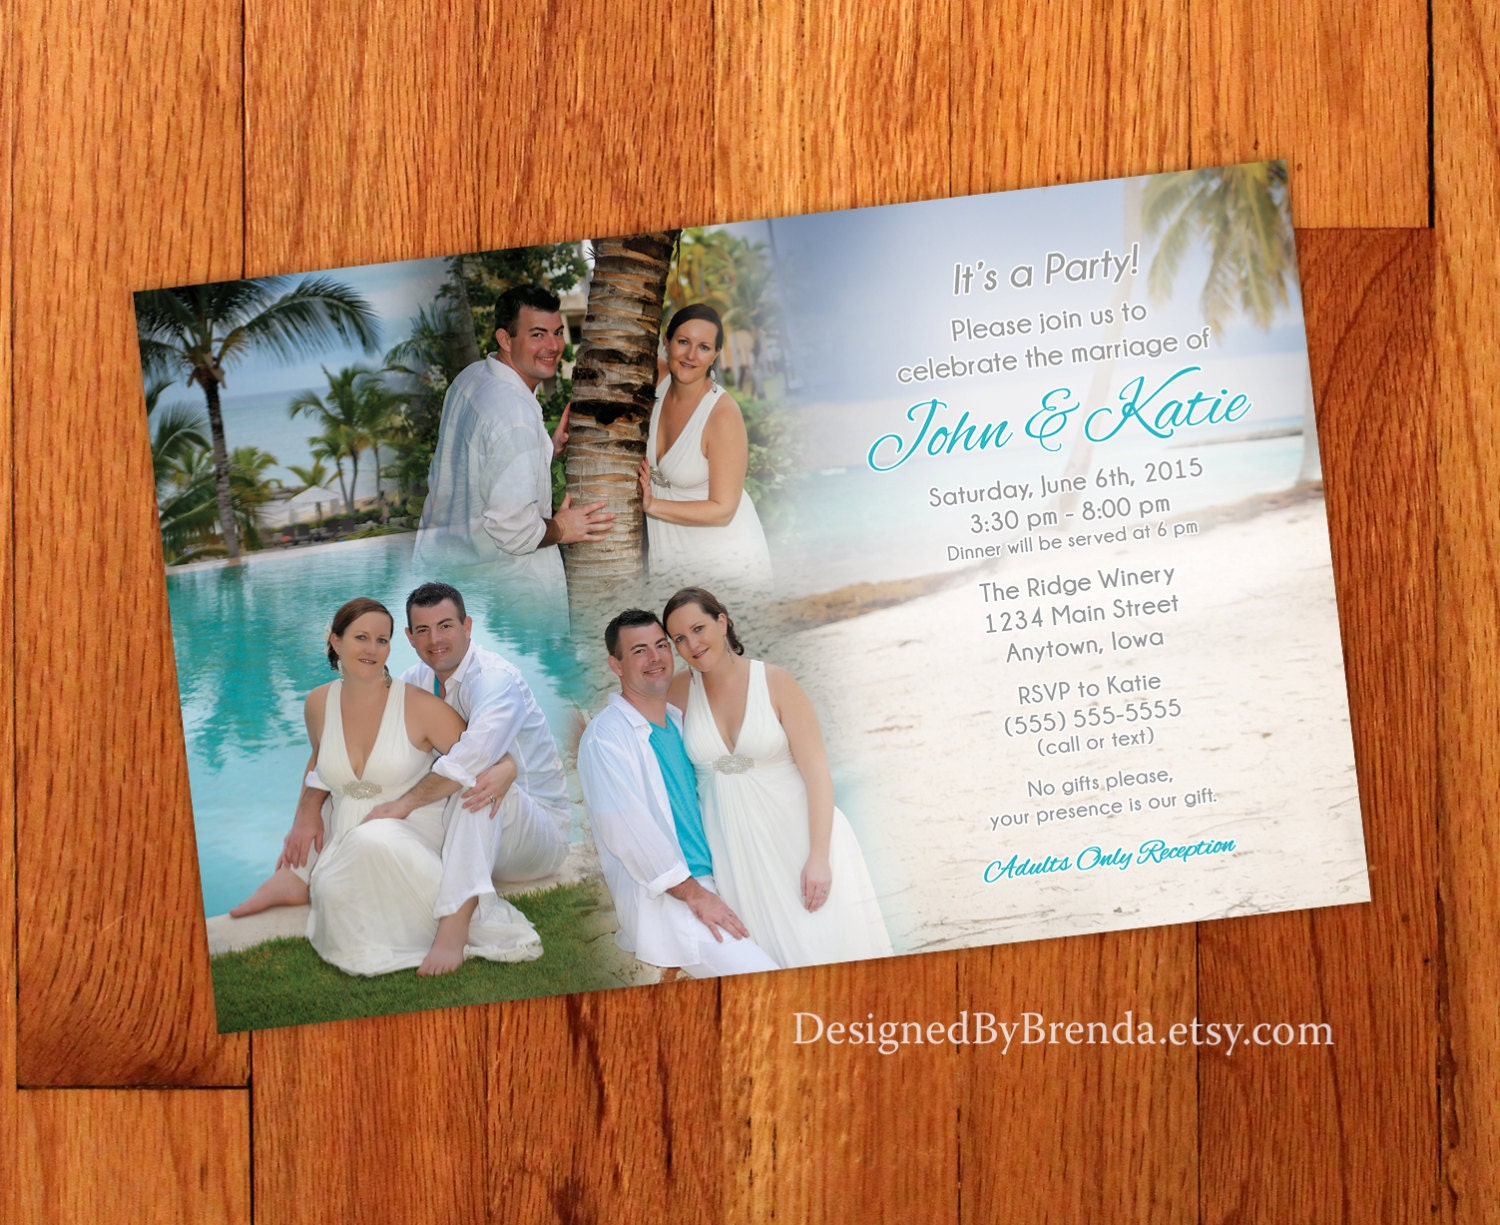 How Big Are Wedding Invitations: Blended Photo Collage Wedding Invitation Large Size Perfect